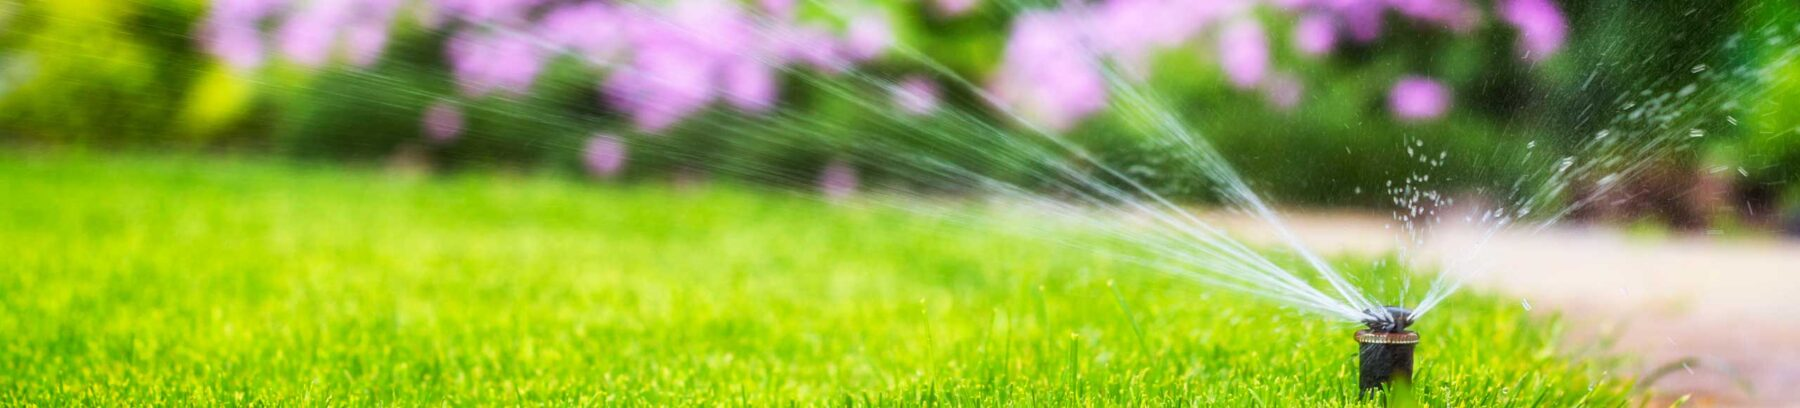 Irrigation supplies and much more are soldat Watersavers Irrigation